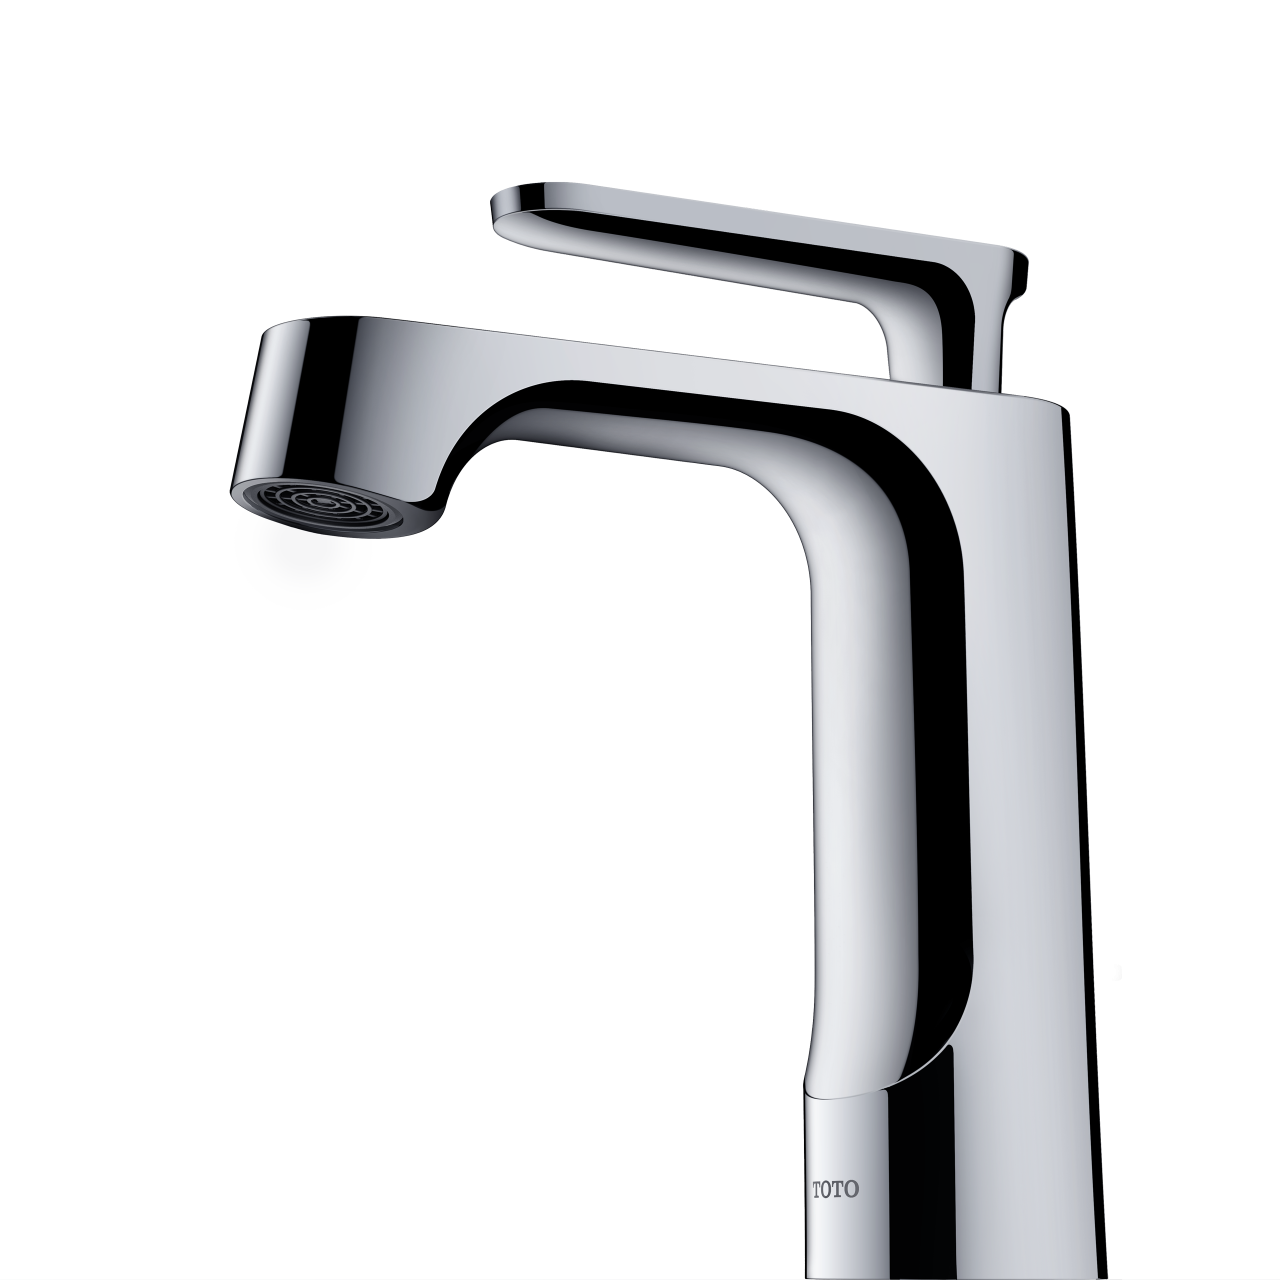 GRO design - Toto single lever tap | Keep It Simple/Timeless | Pinterest